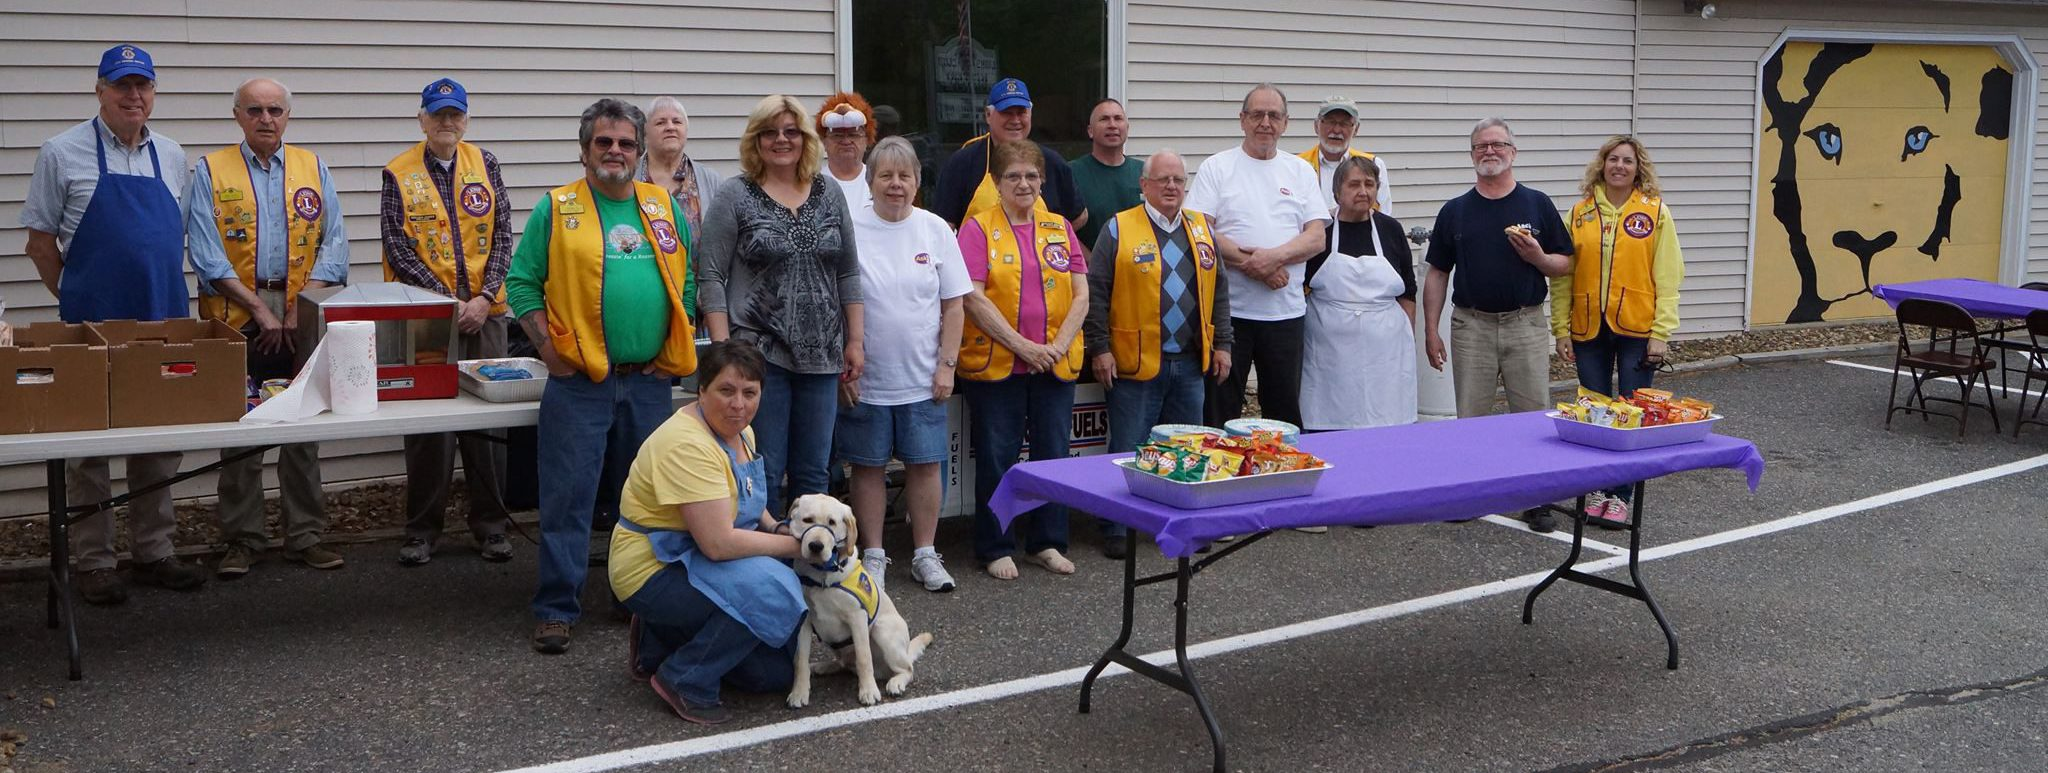 Kittery Lions Club